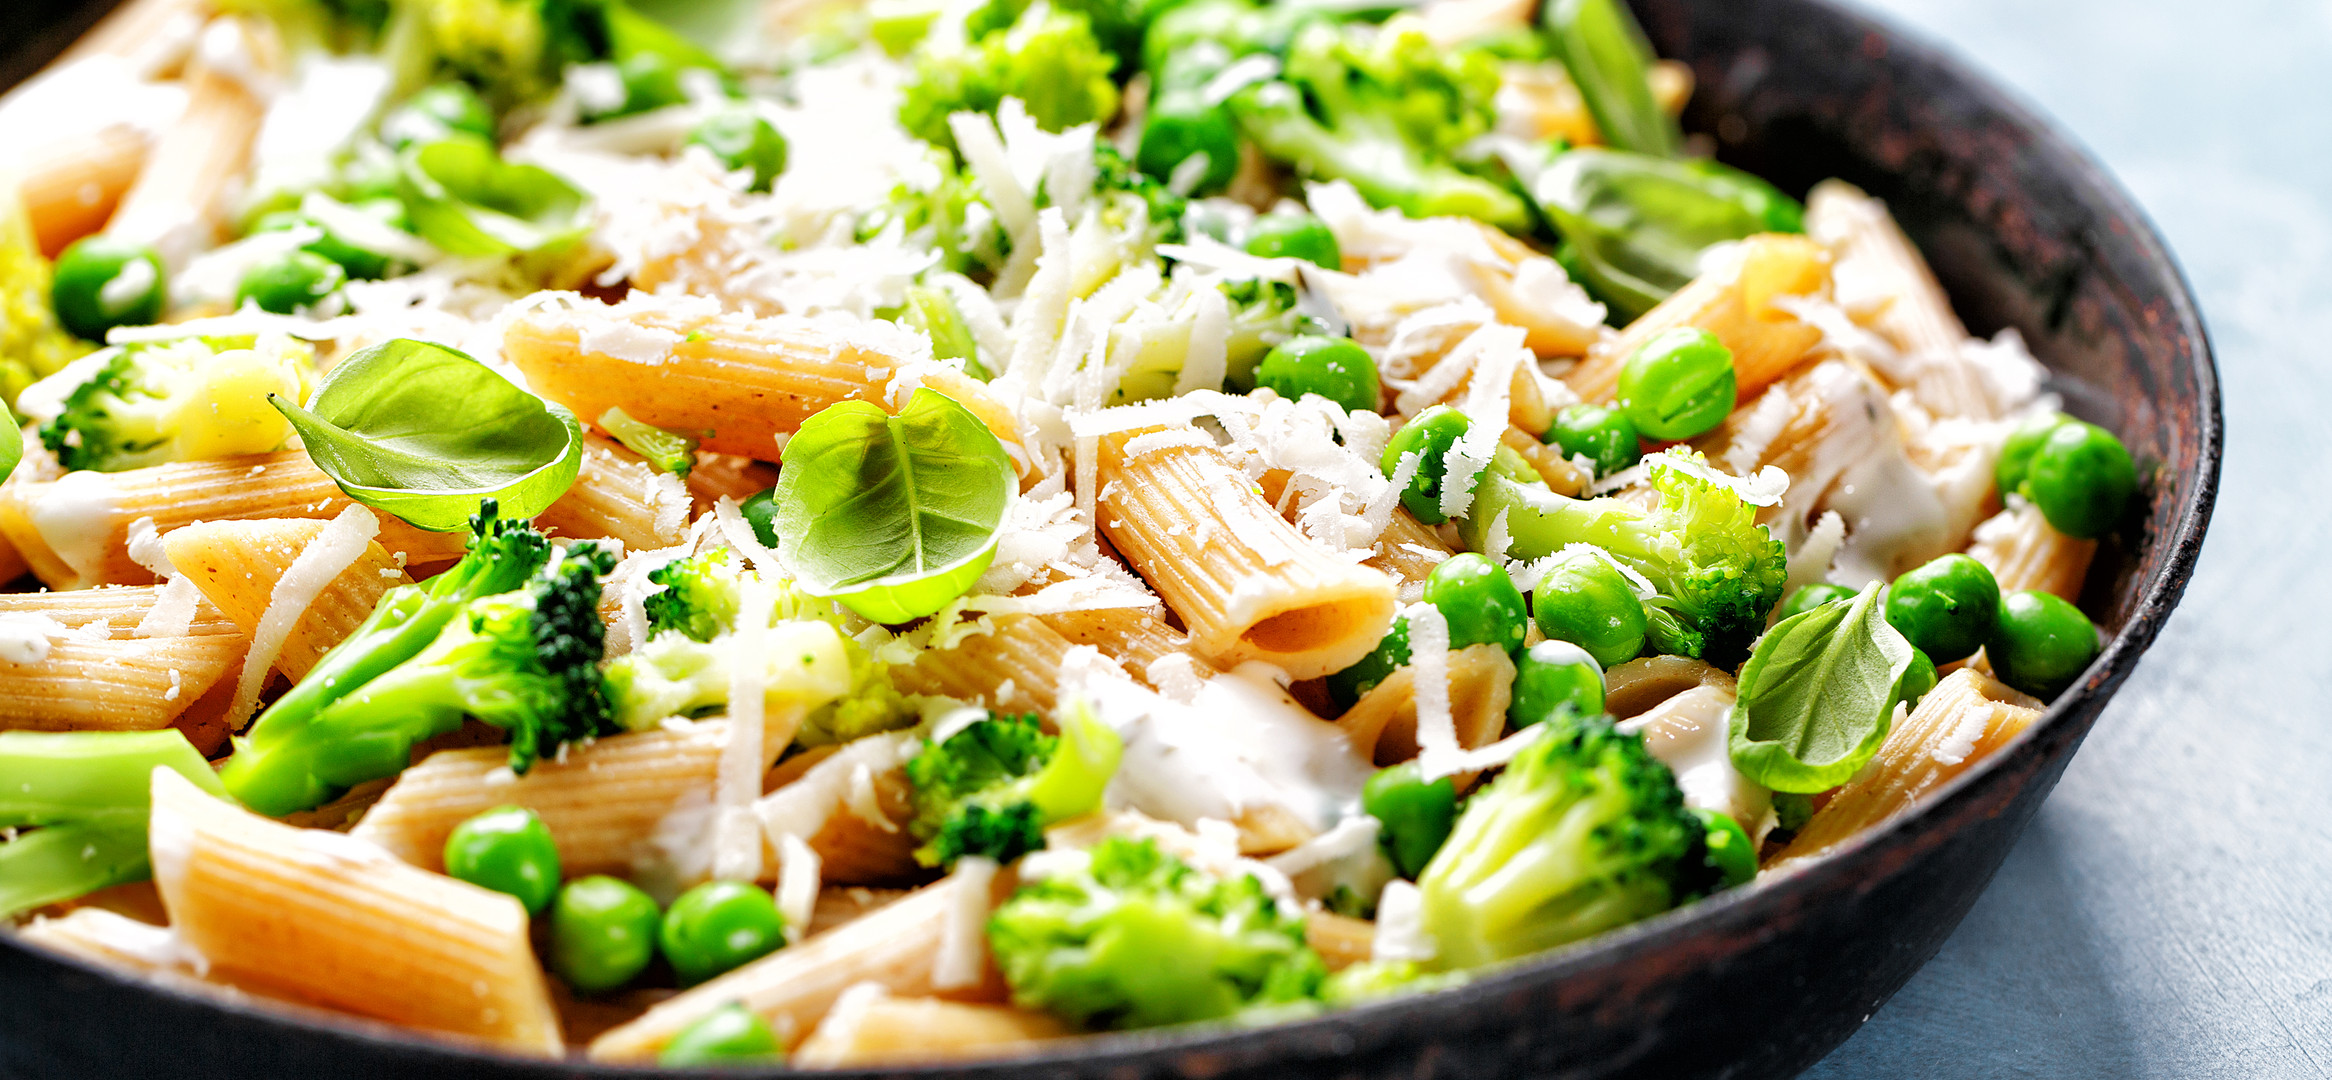 healthy-italian-pasta-with-broccoli-5DR3